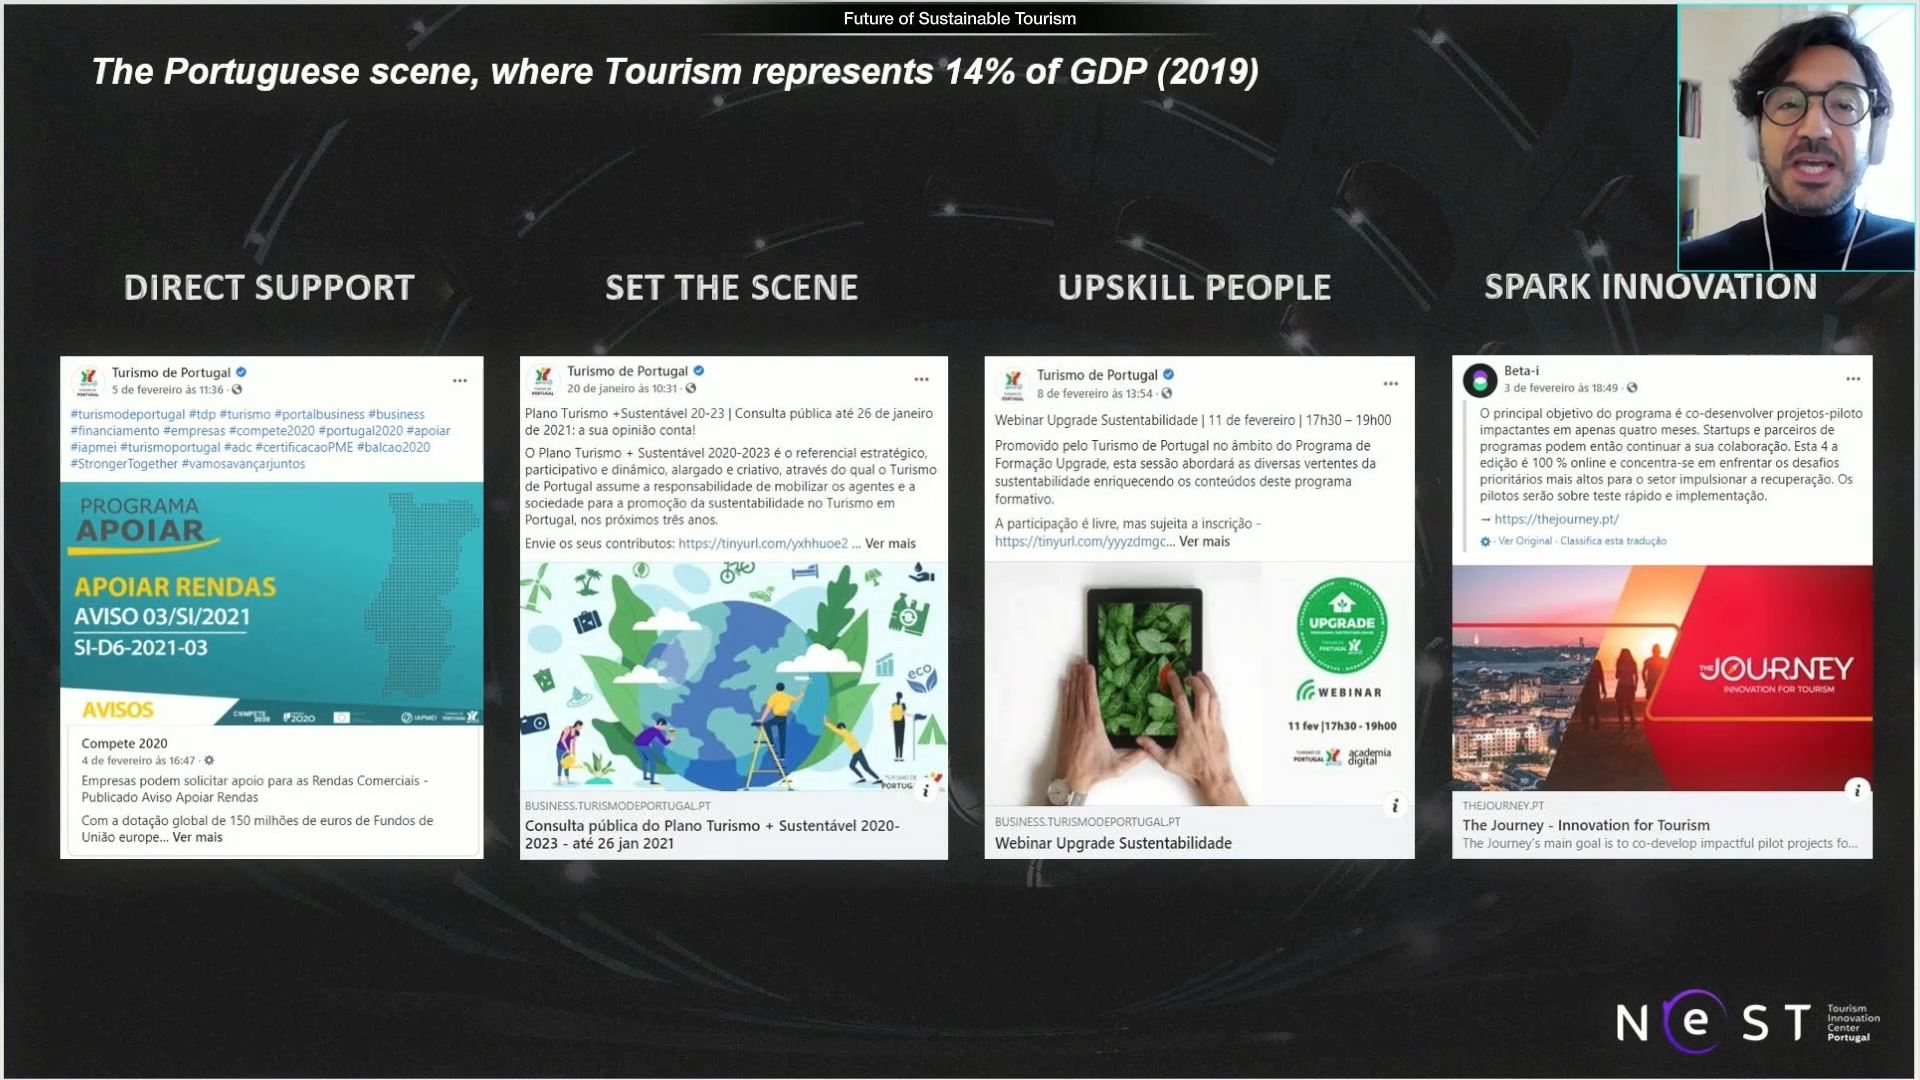 expo 2020 travel and connectivity week virtual event speaker with presentation